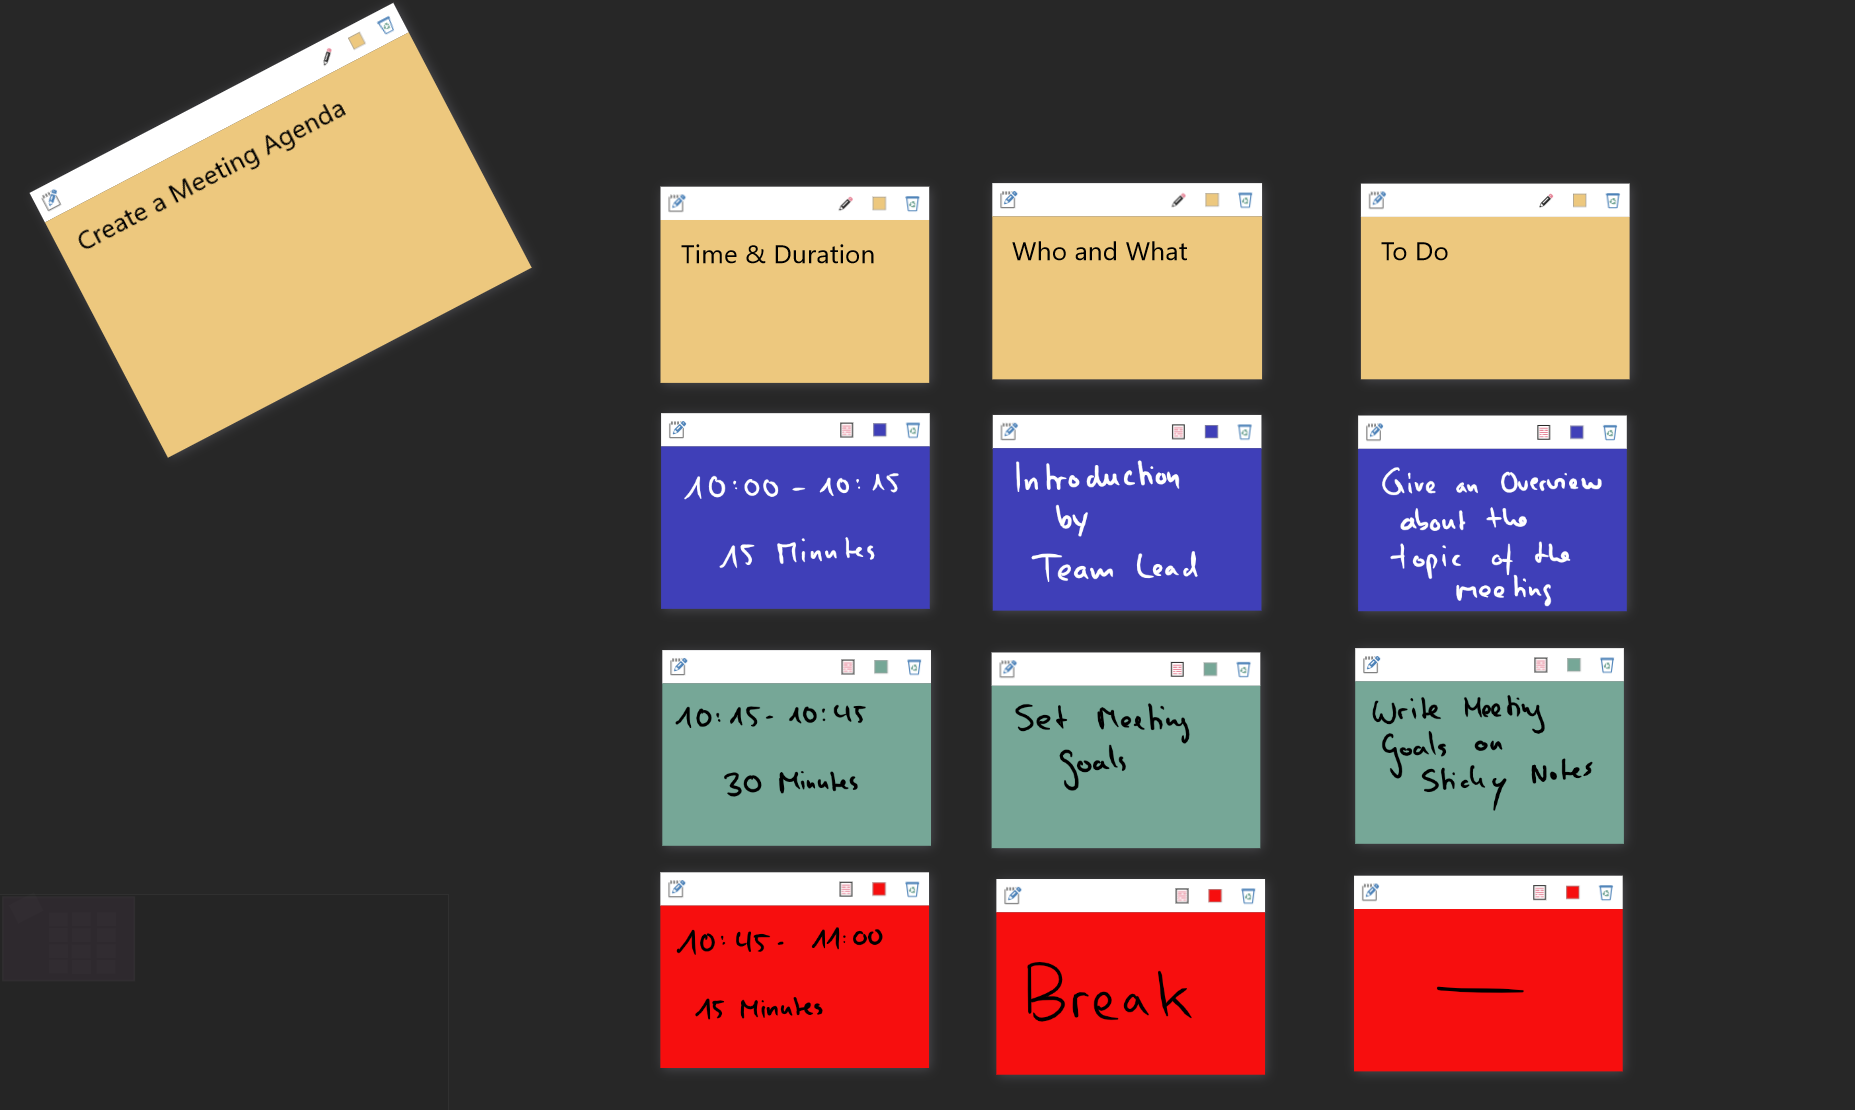 A New Feature Project Templates These Are Predefined Projects Filled With The Right Tiles To Easily Jump Start Meeting Brainstorming Session Or